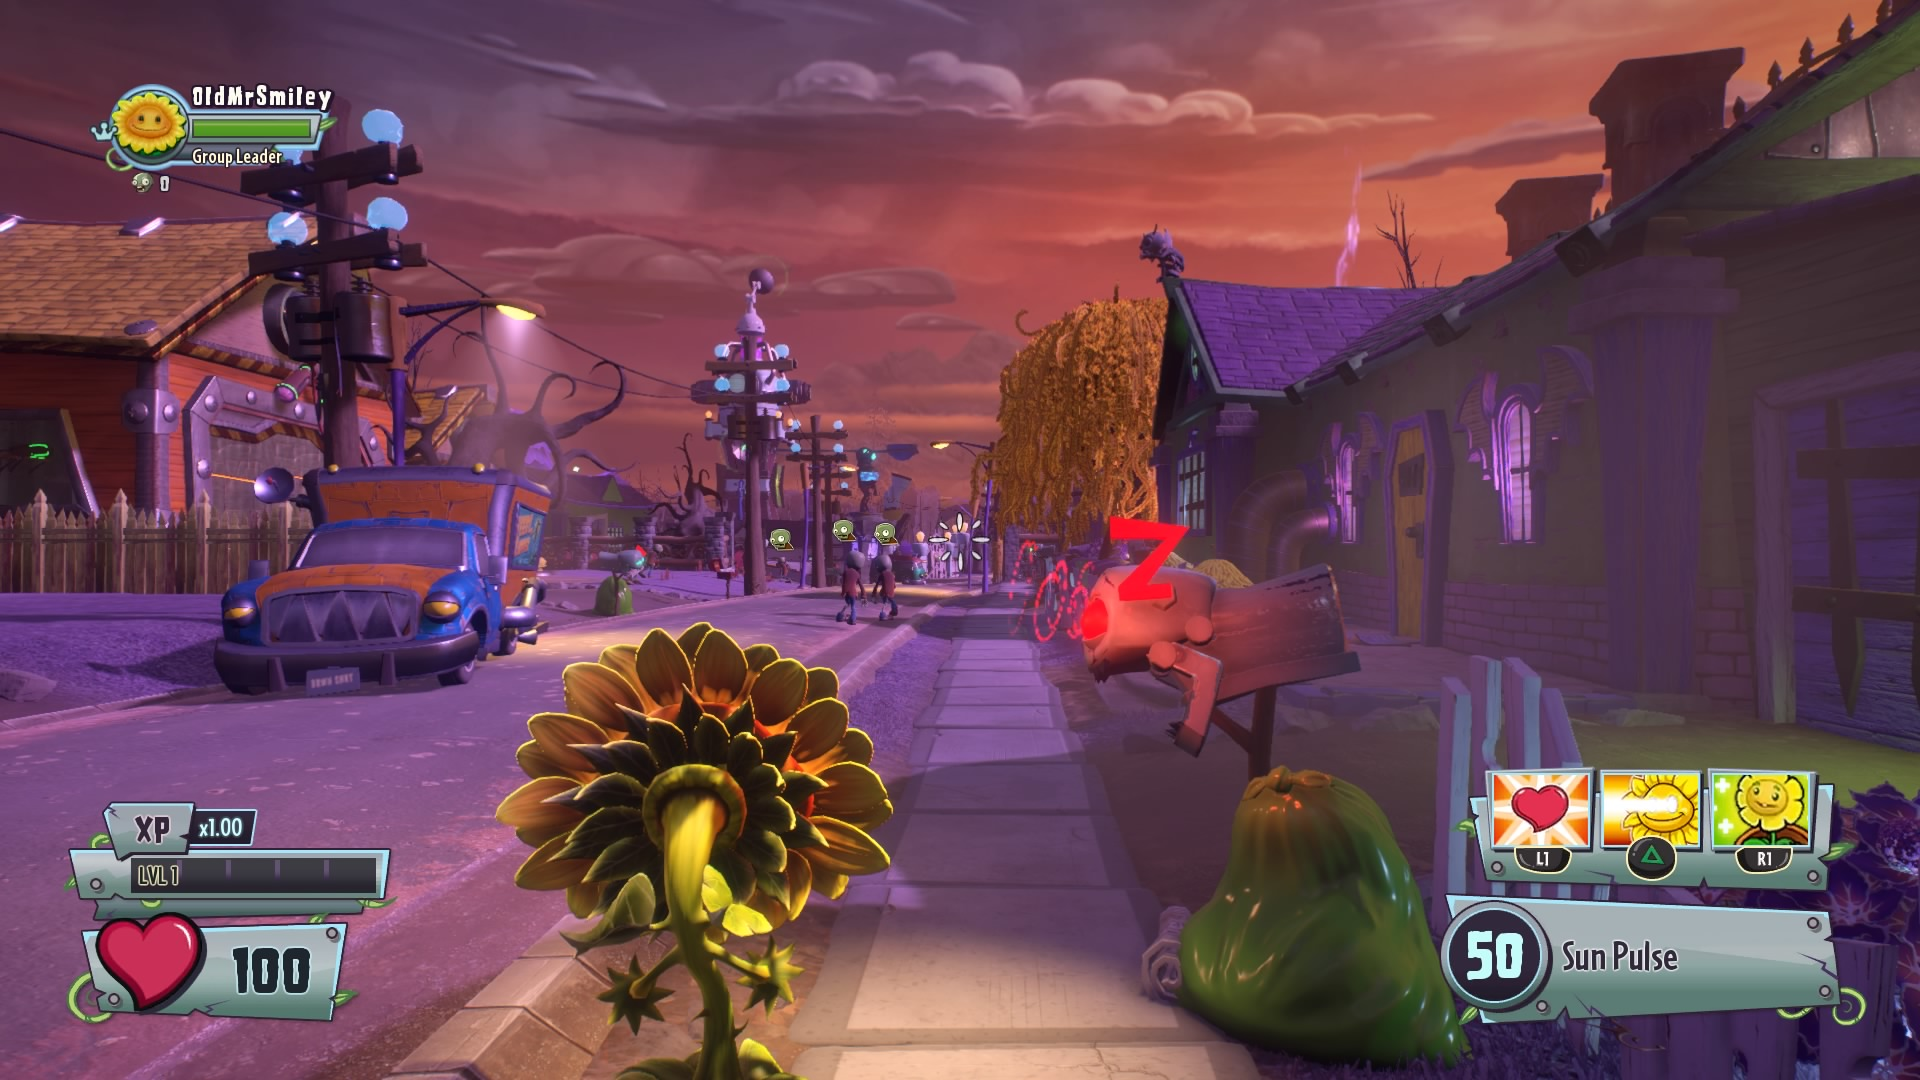 Plants vs. Zombies: Garden Warfare 2 - PlayGamesOnline